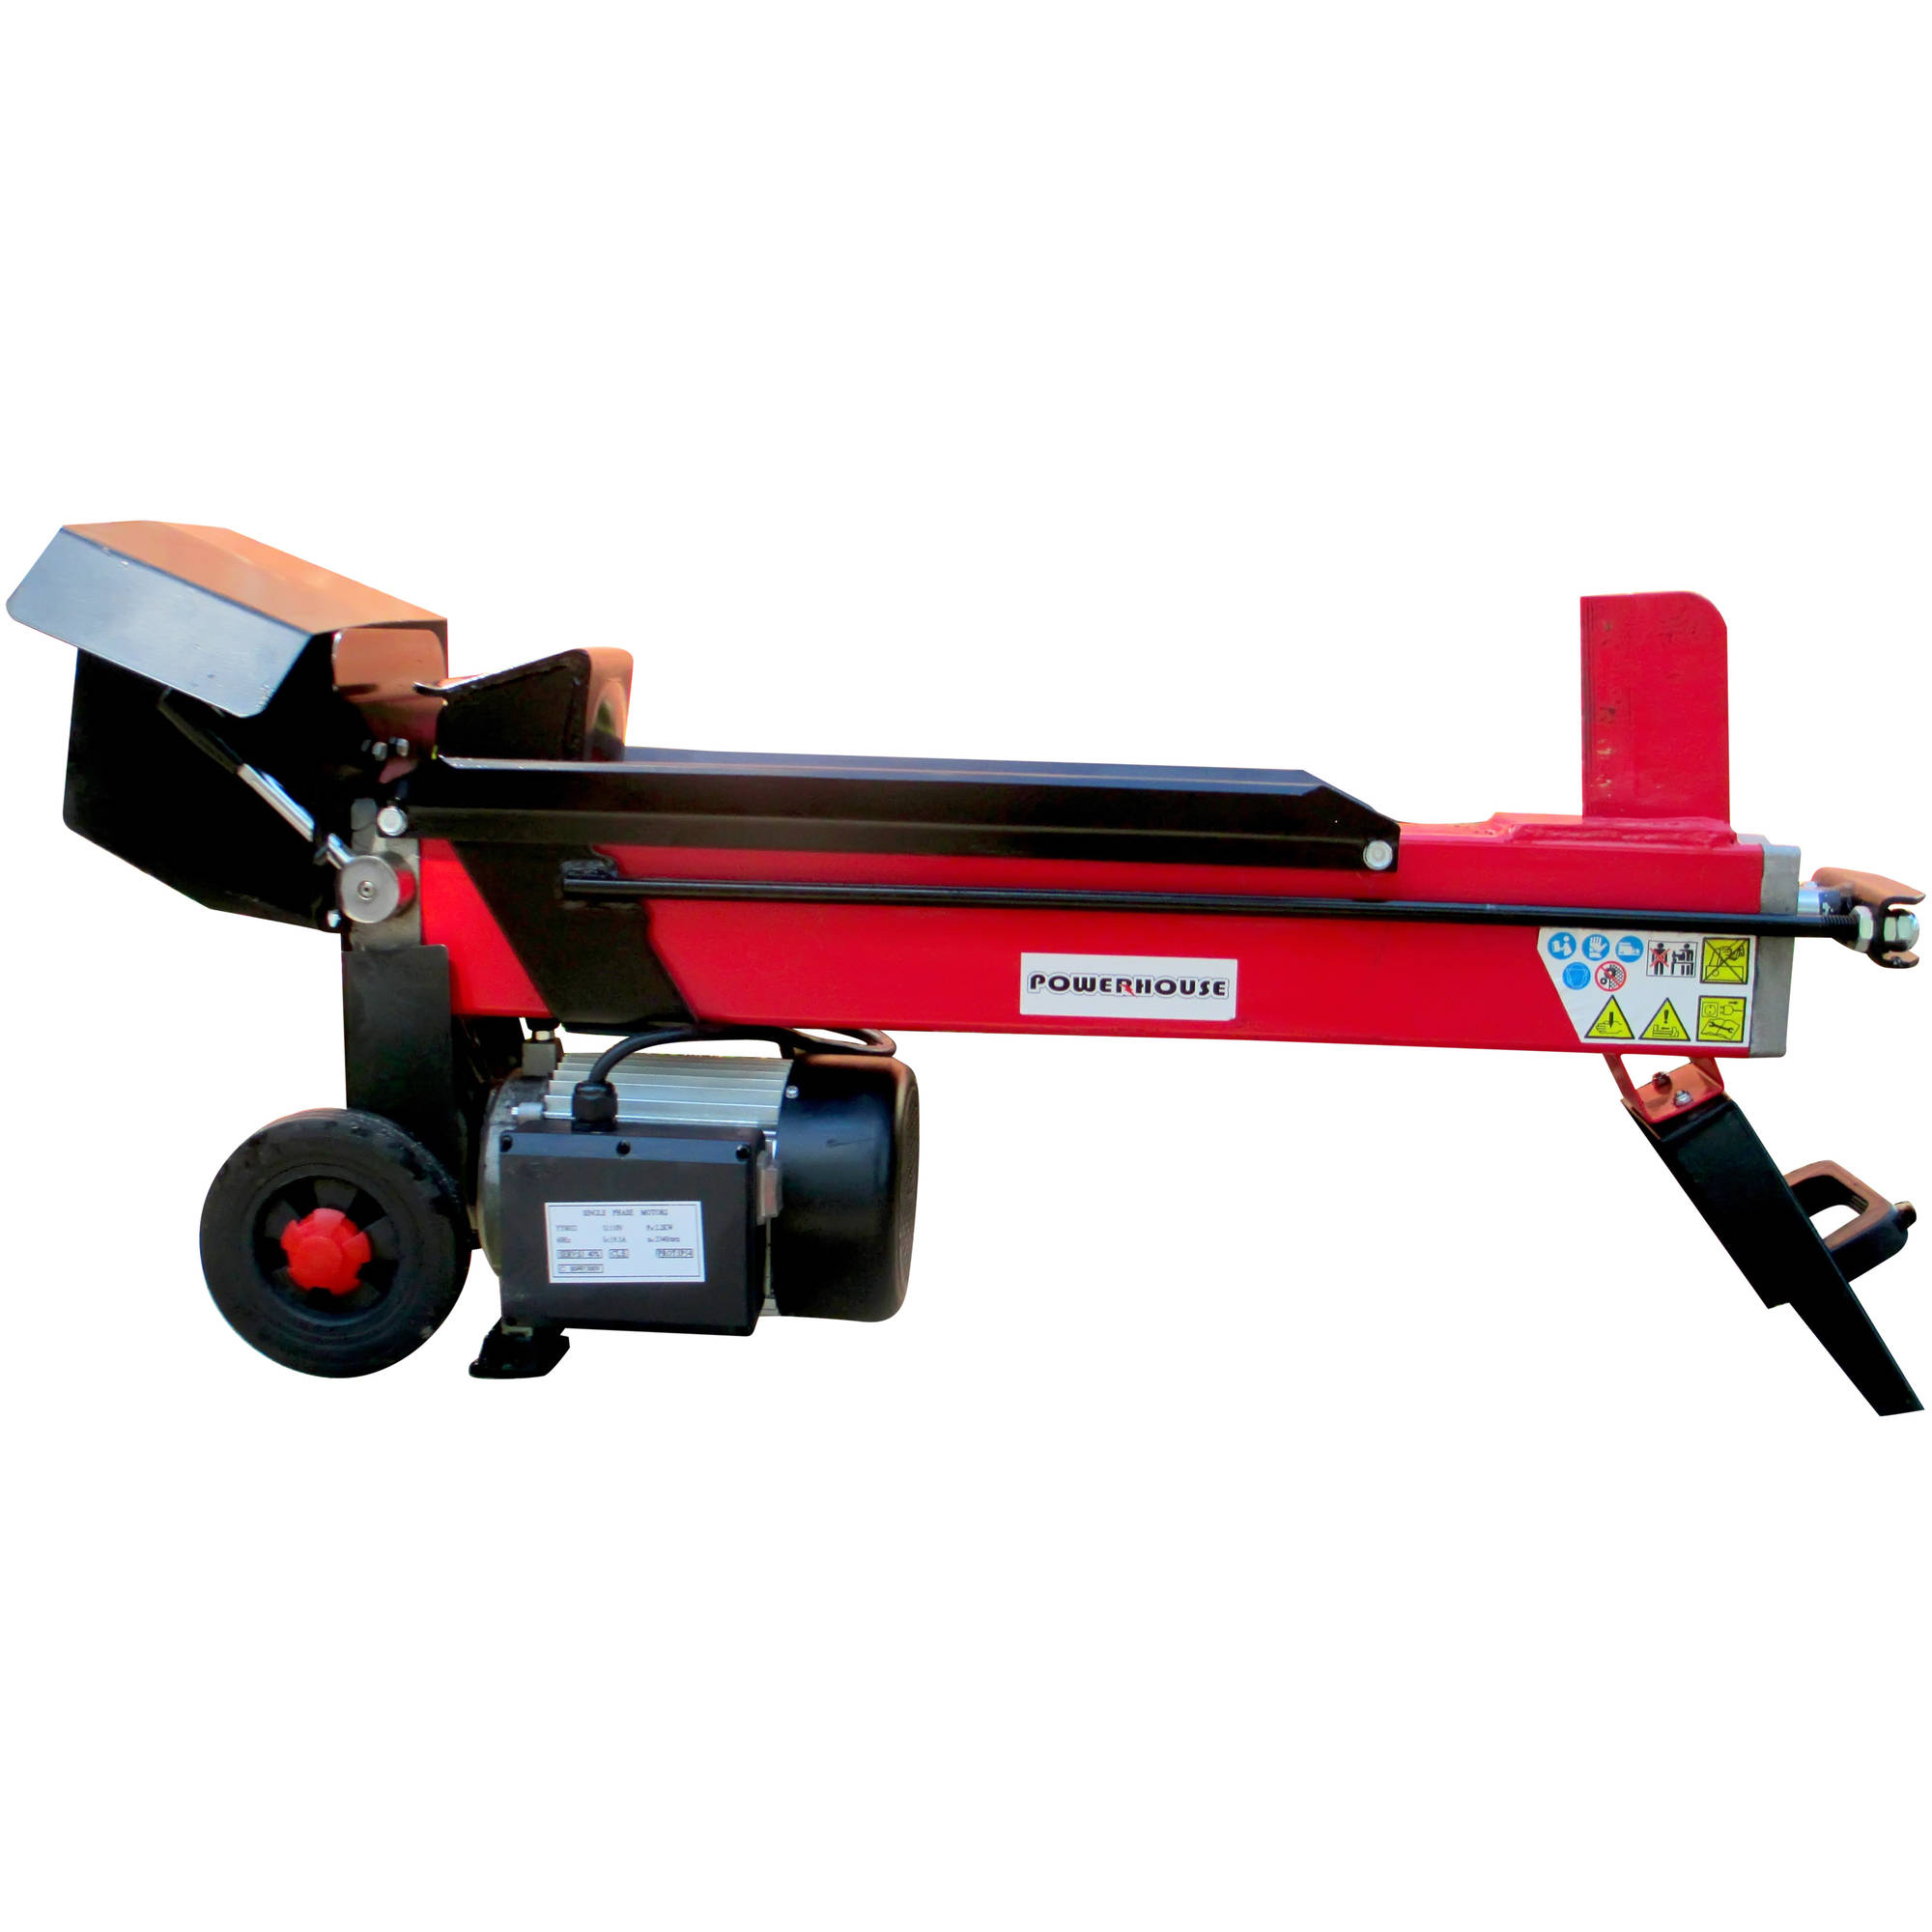 Powerhouse 7-Ton Electric Hydraulic Log Splitter by Log Splitters